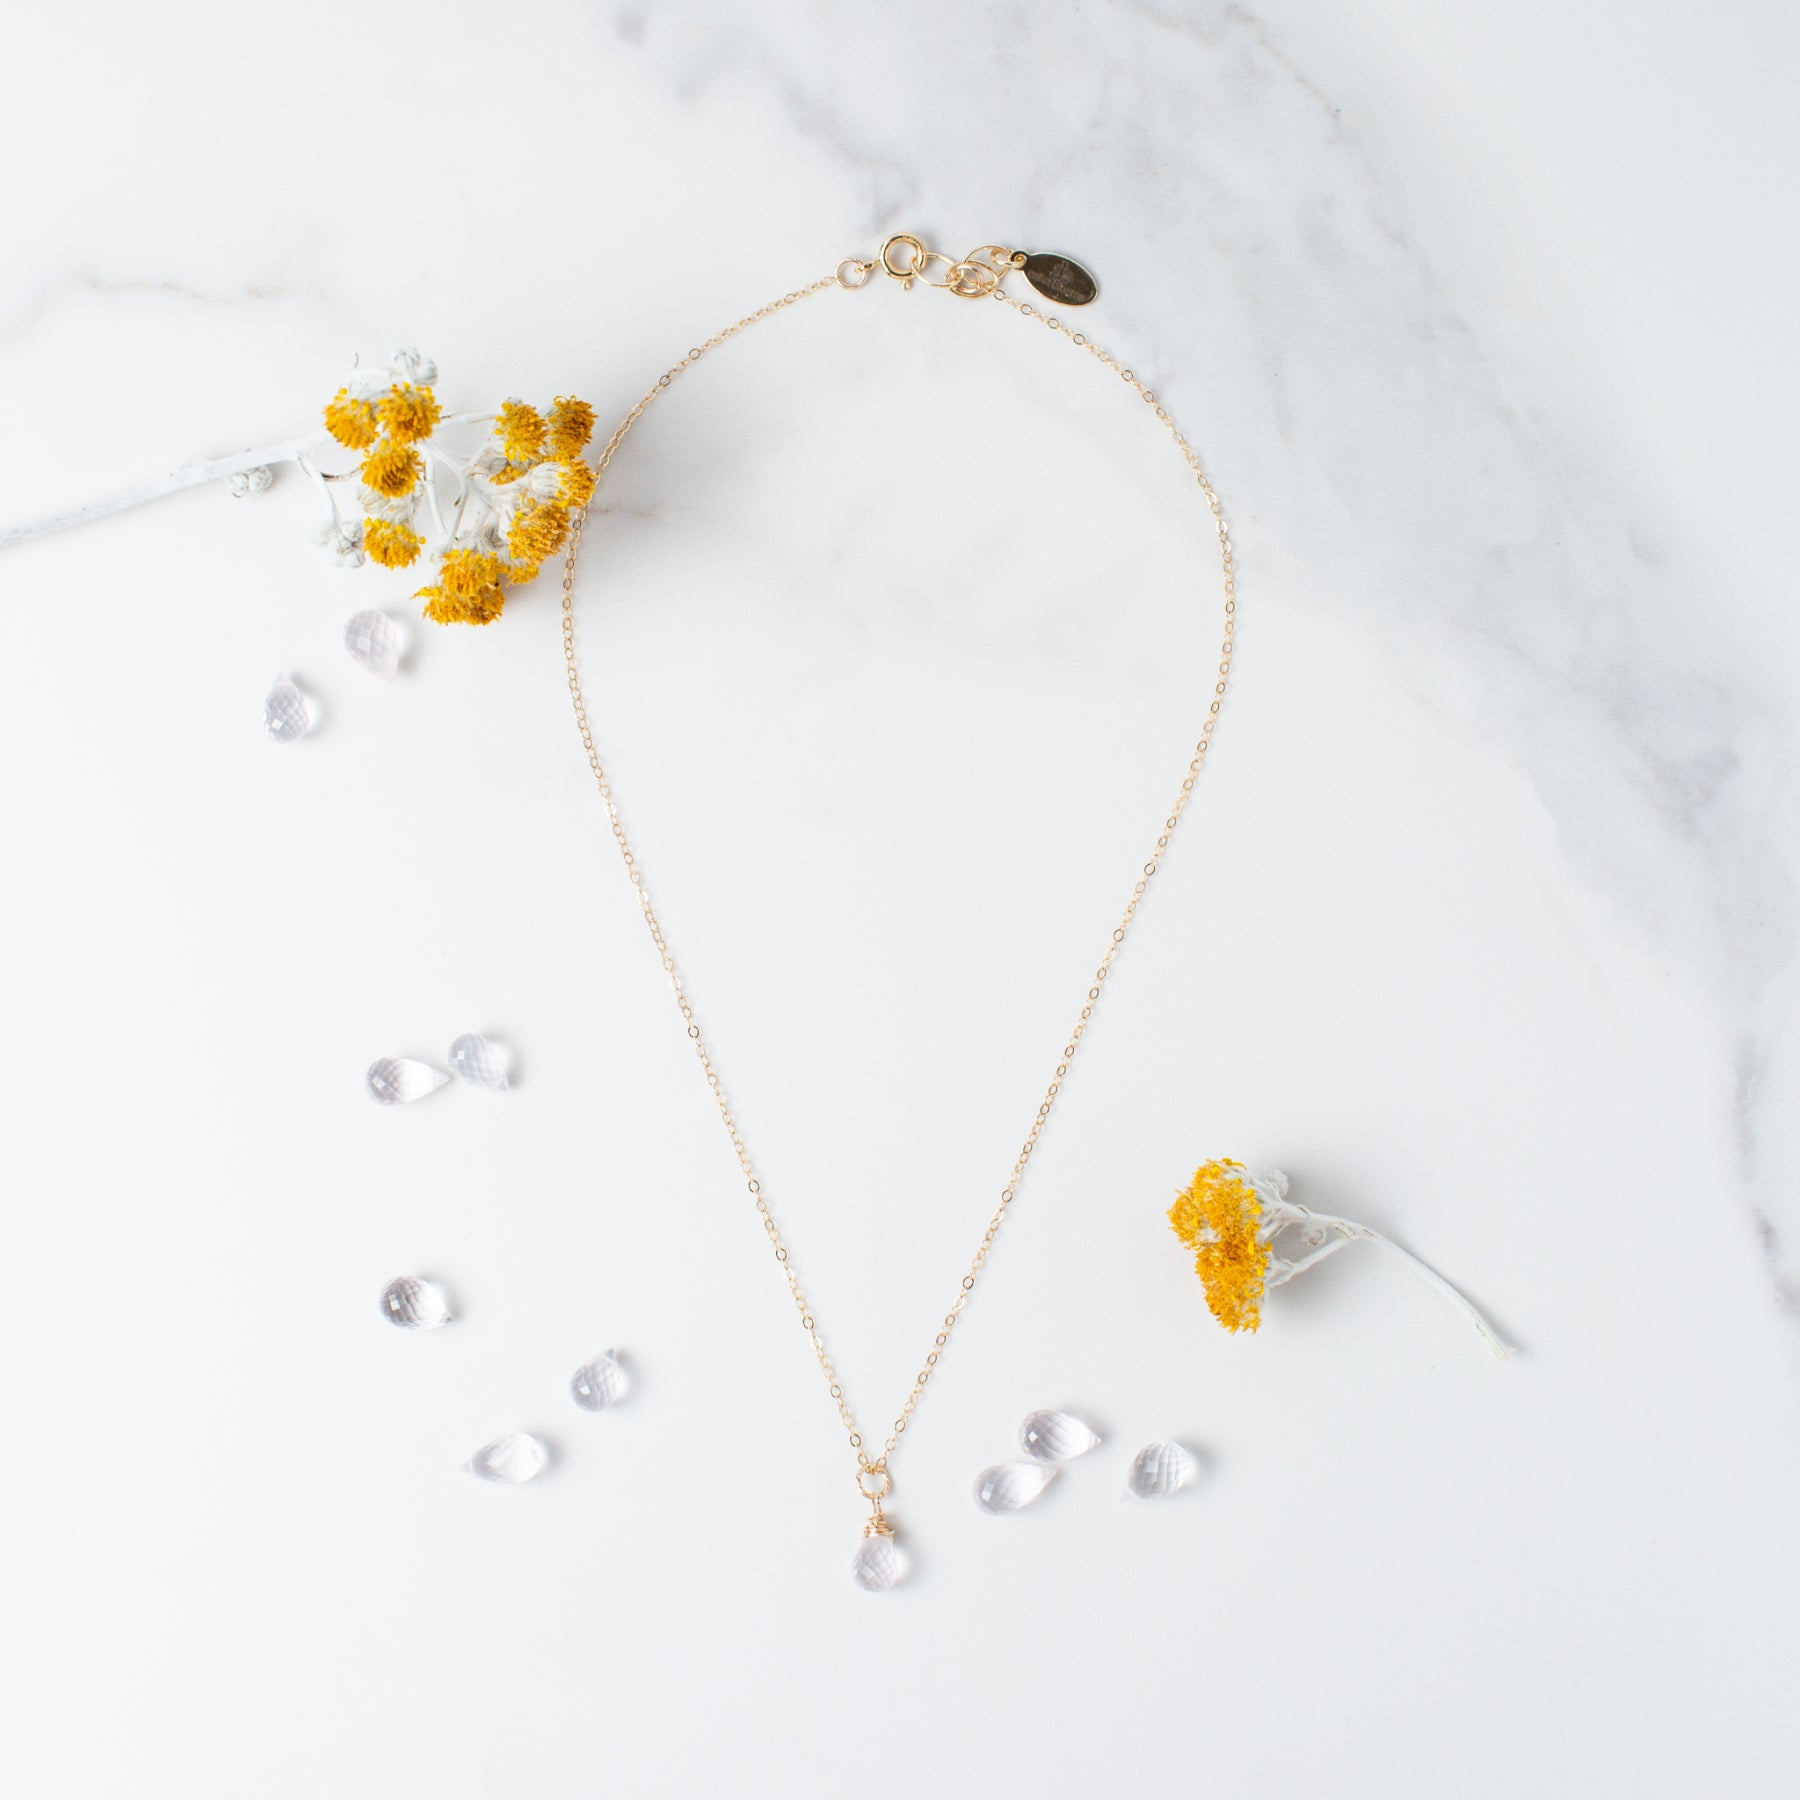 Teardrop-shaped Rose Quartz and Gold Necklace 'You Are Loved' Flat Lay with Yellow Flowers Photo by Asha Blooms